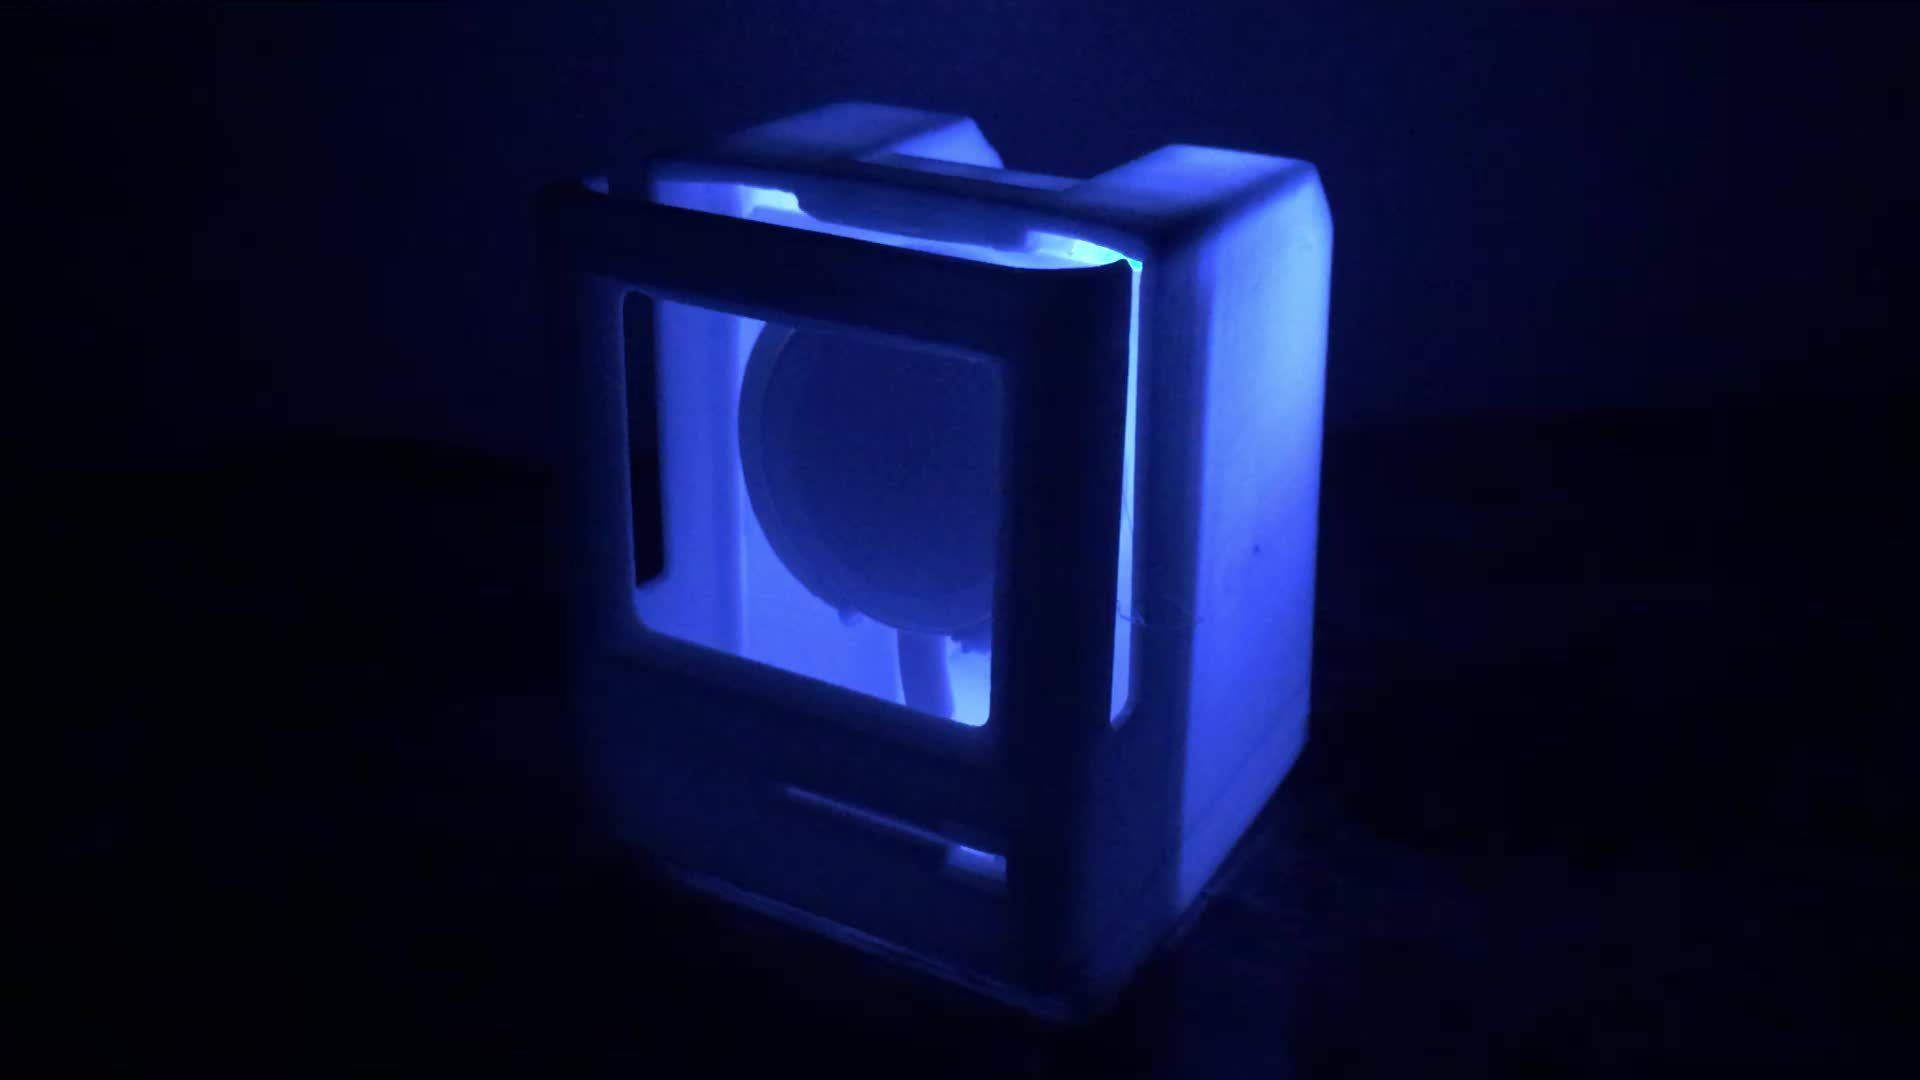 applewatch, I hooked up a little blue LED and now my dock is a night light as well! GIFs